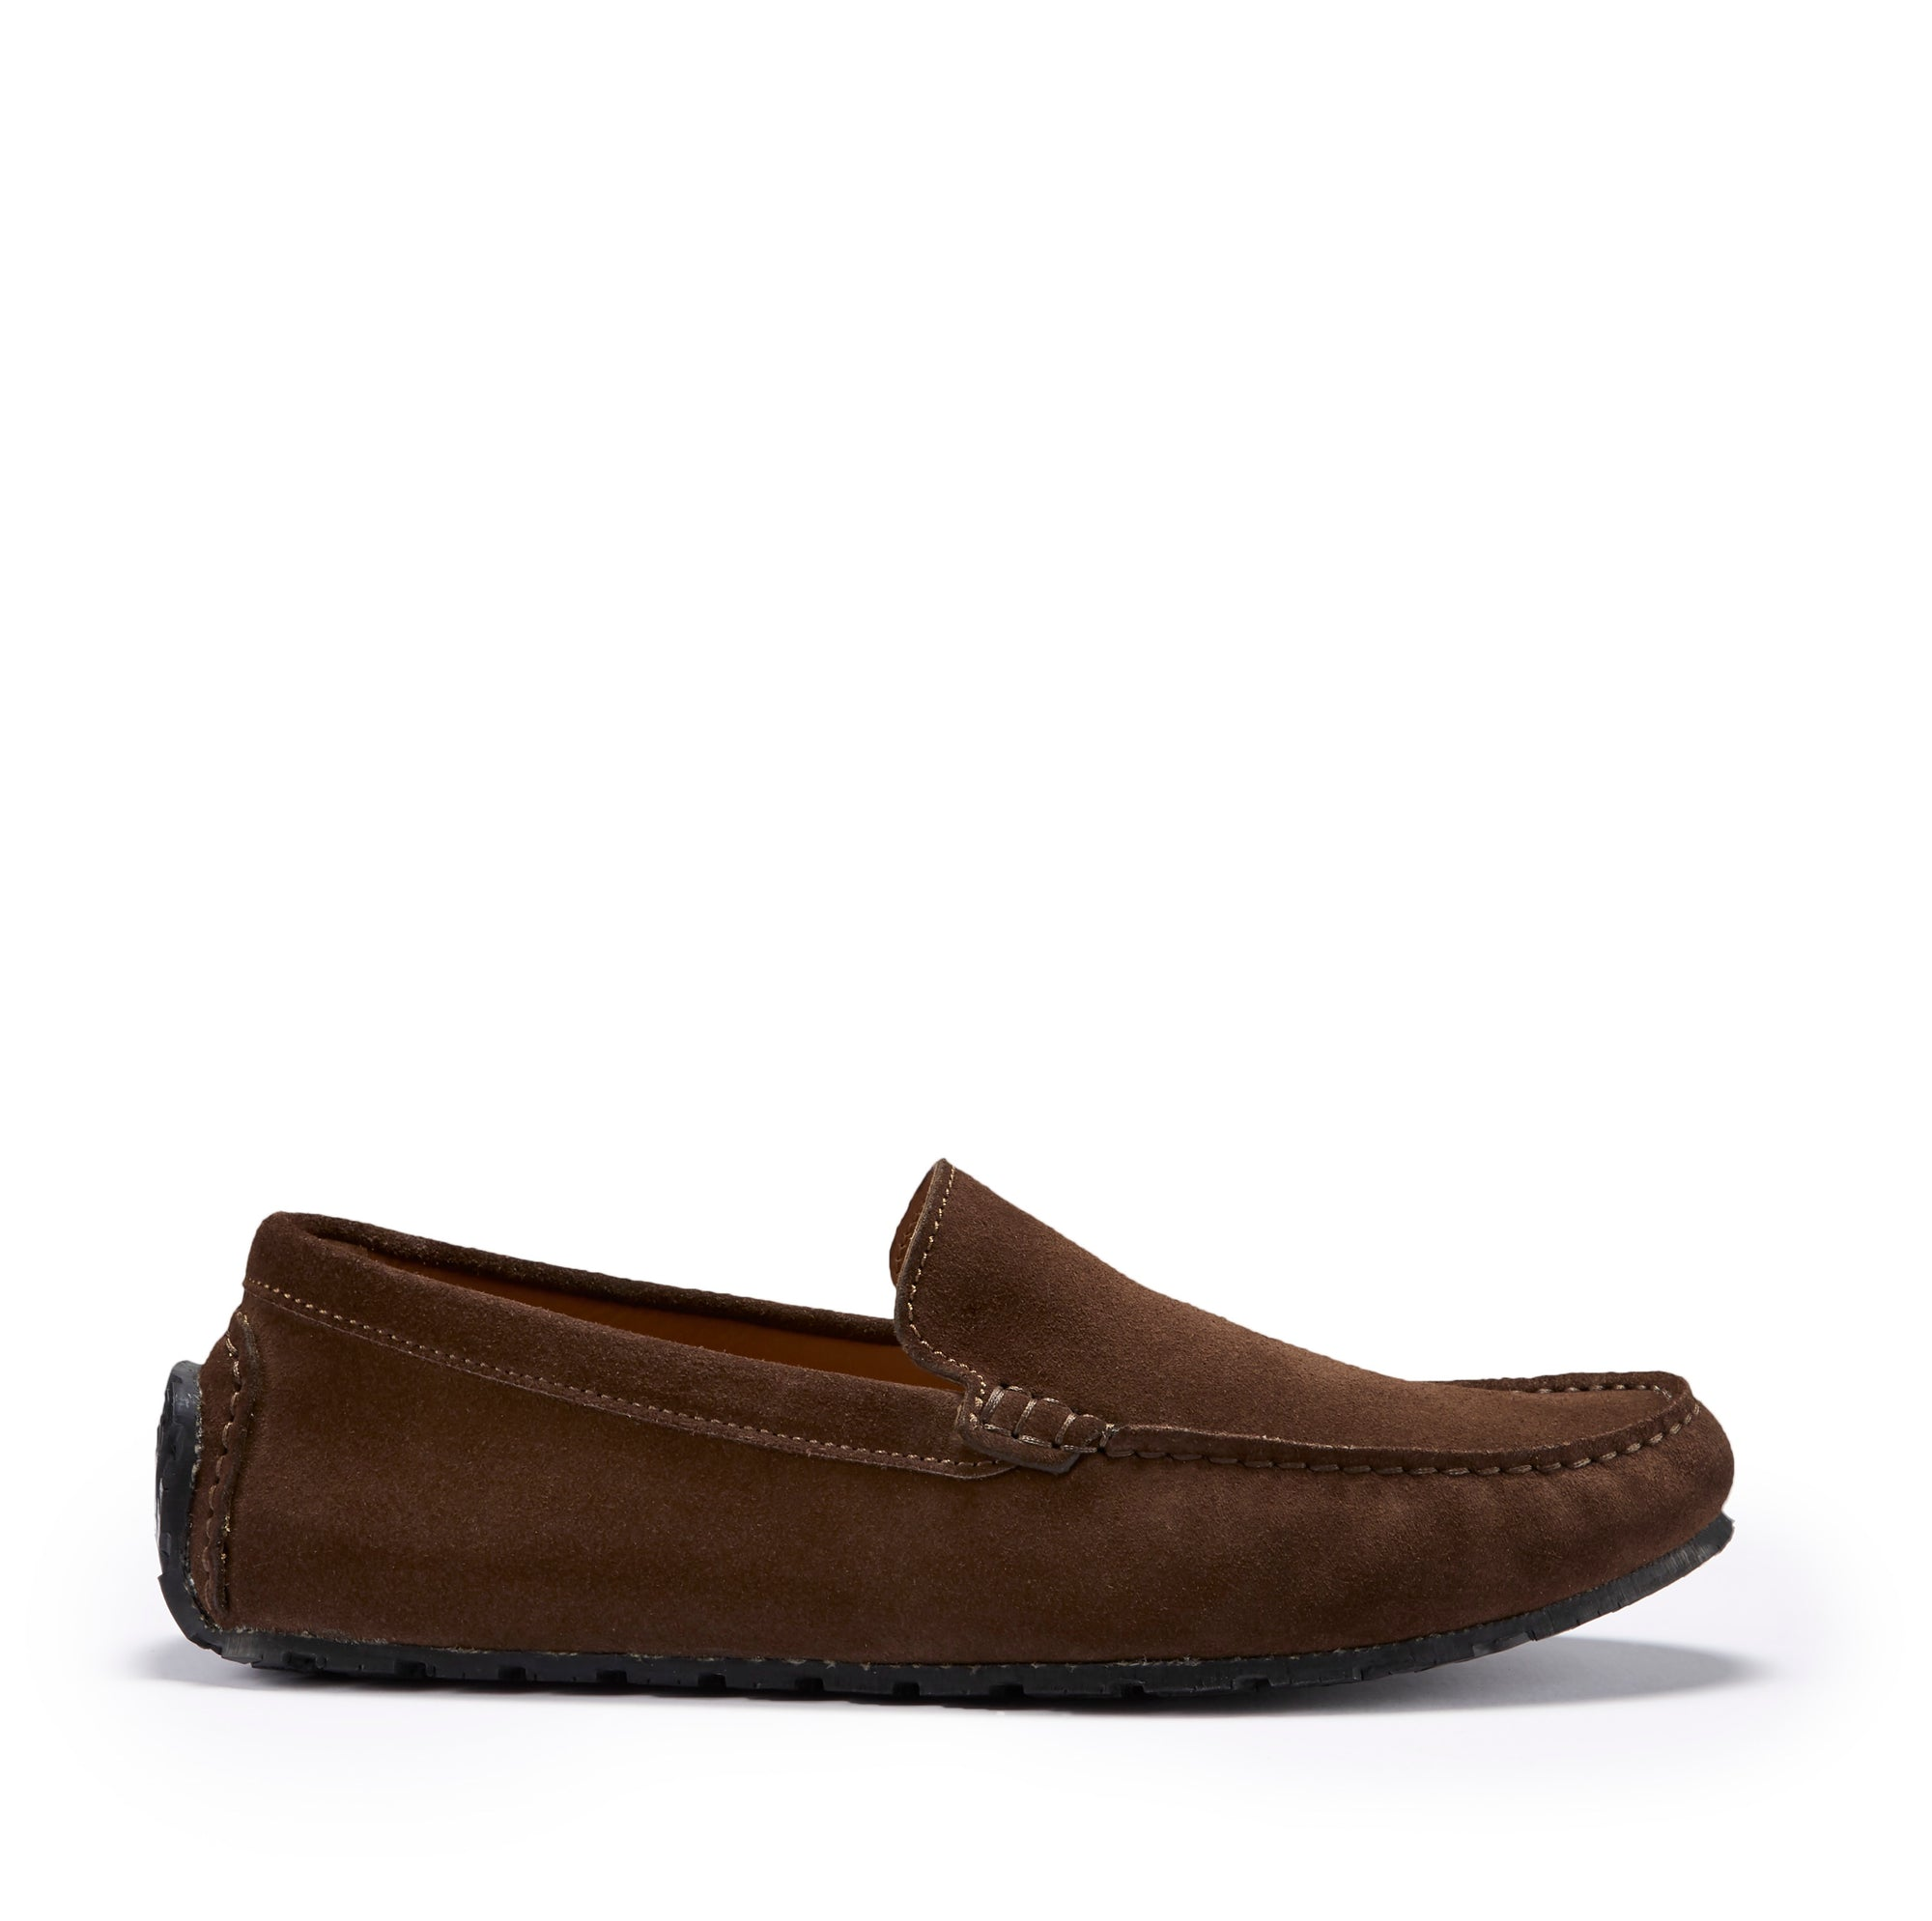 Tyre Sole Driving Loafers, brown suede